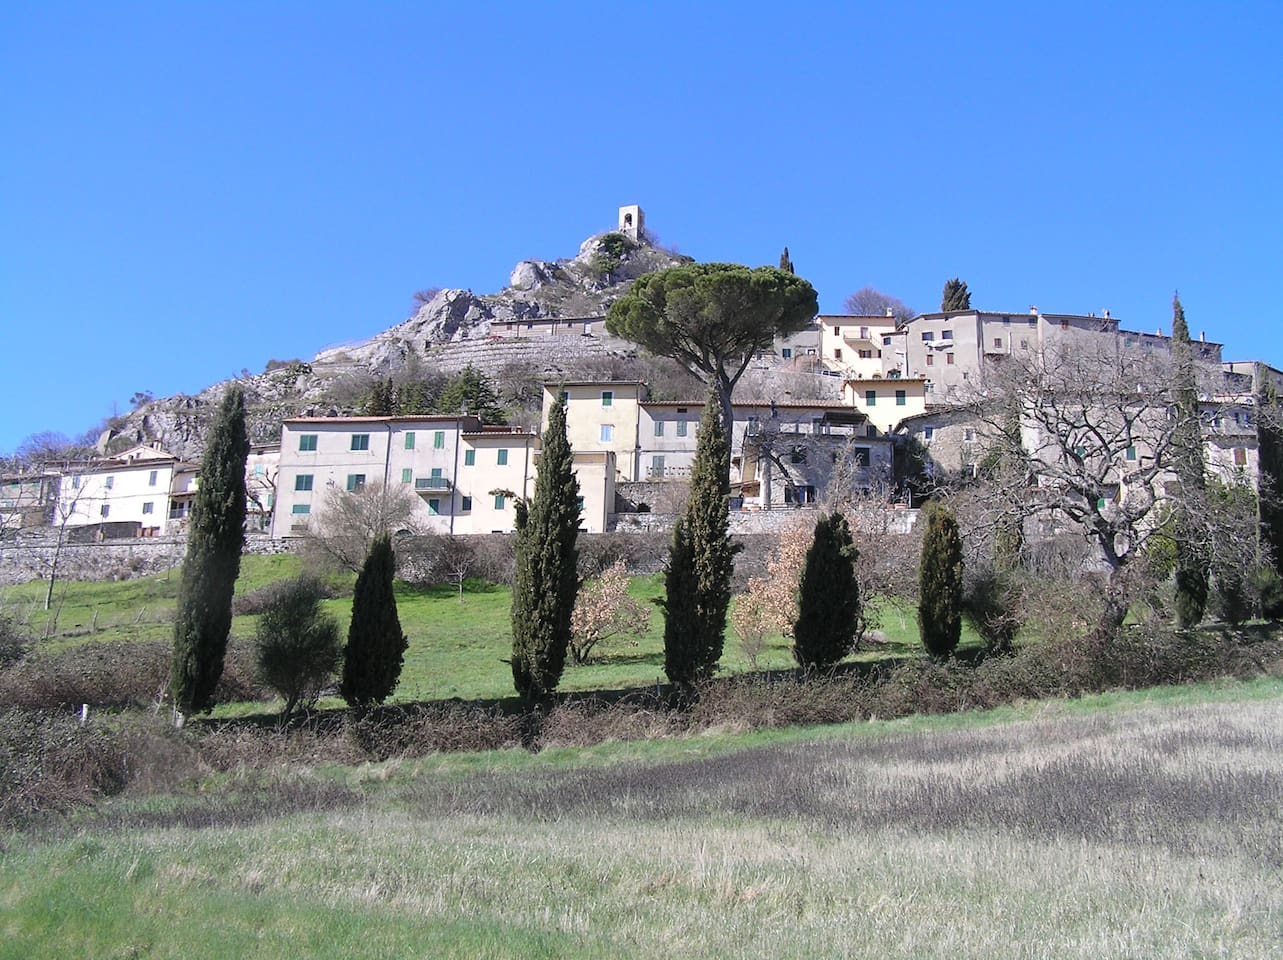 Il paese...